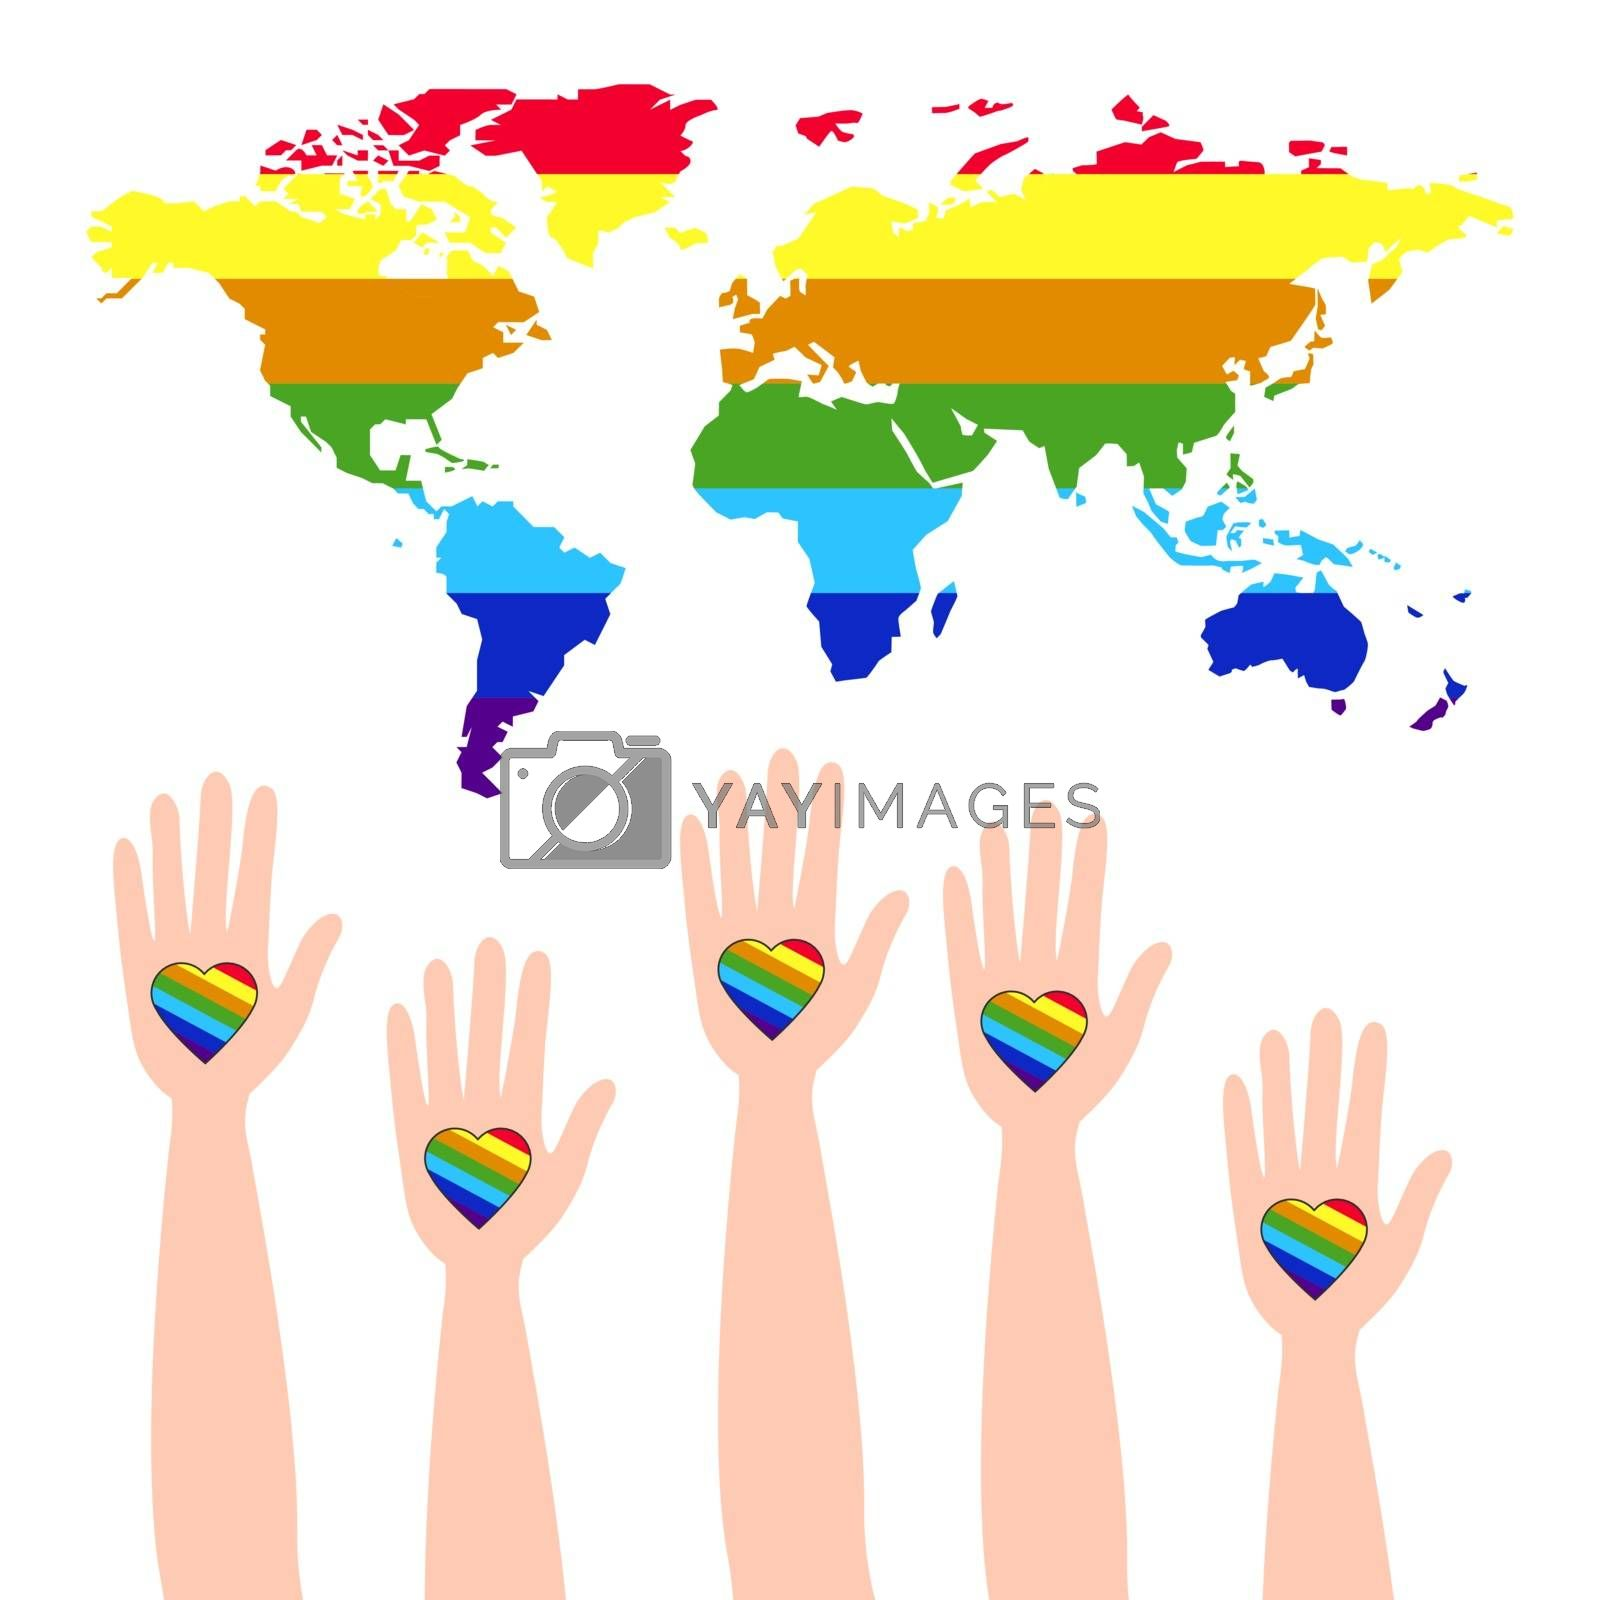 Lgbt support, fight for gay and lesbian rights, helping hands and hearts, rainbow colors. Modern flat vector illustration stylish design element